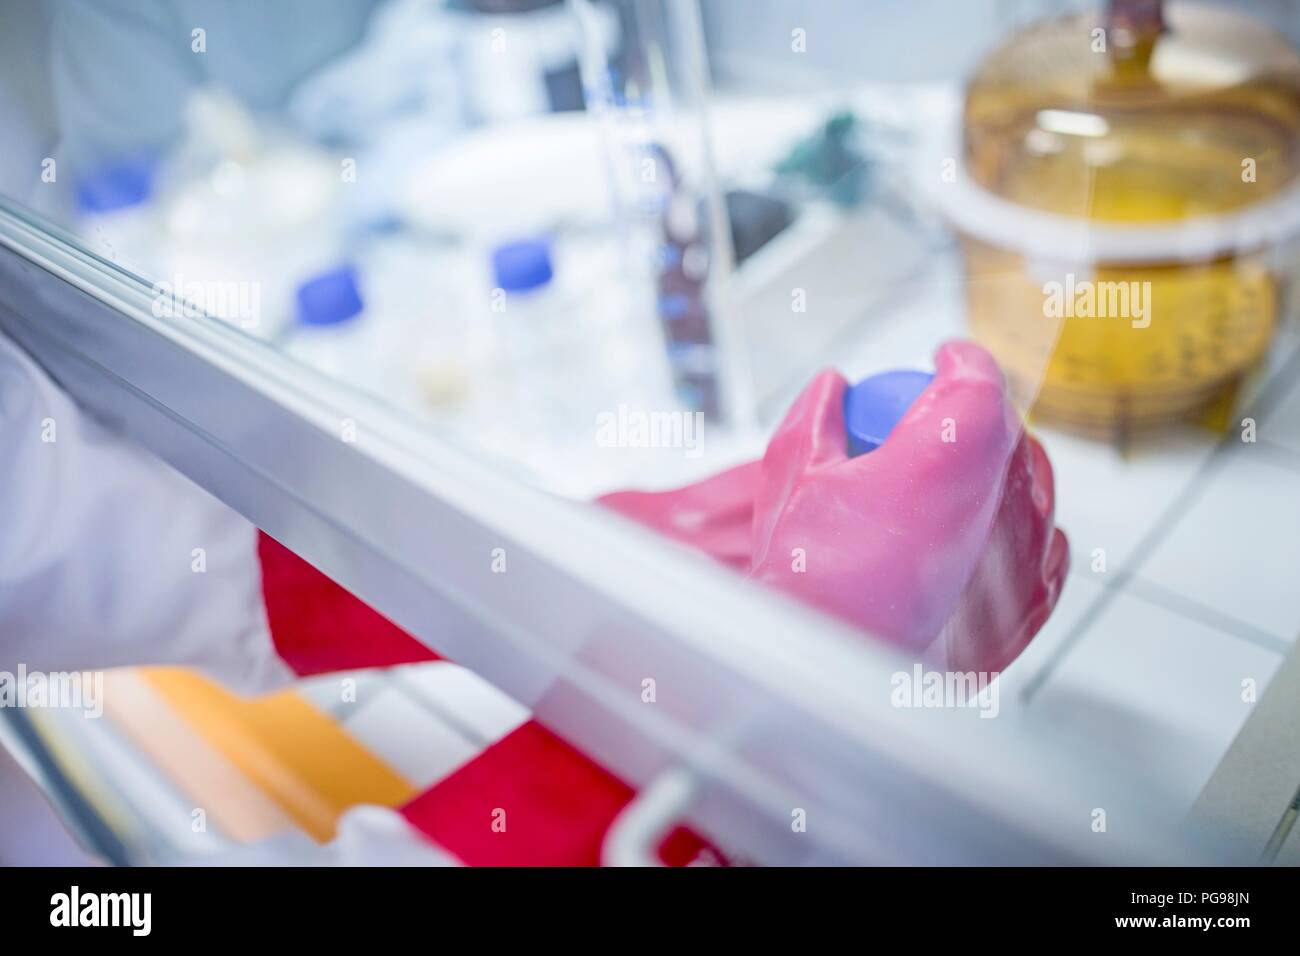 Lab technician using a laminar flow hood and thick gloves while working with dangerous chemicals. - Stock Image